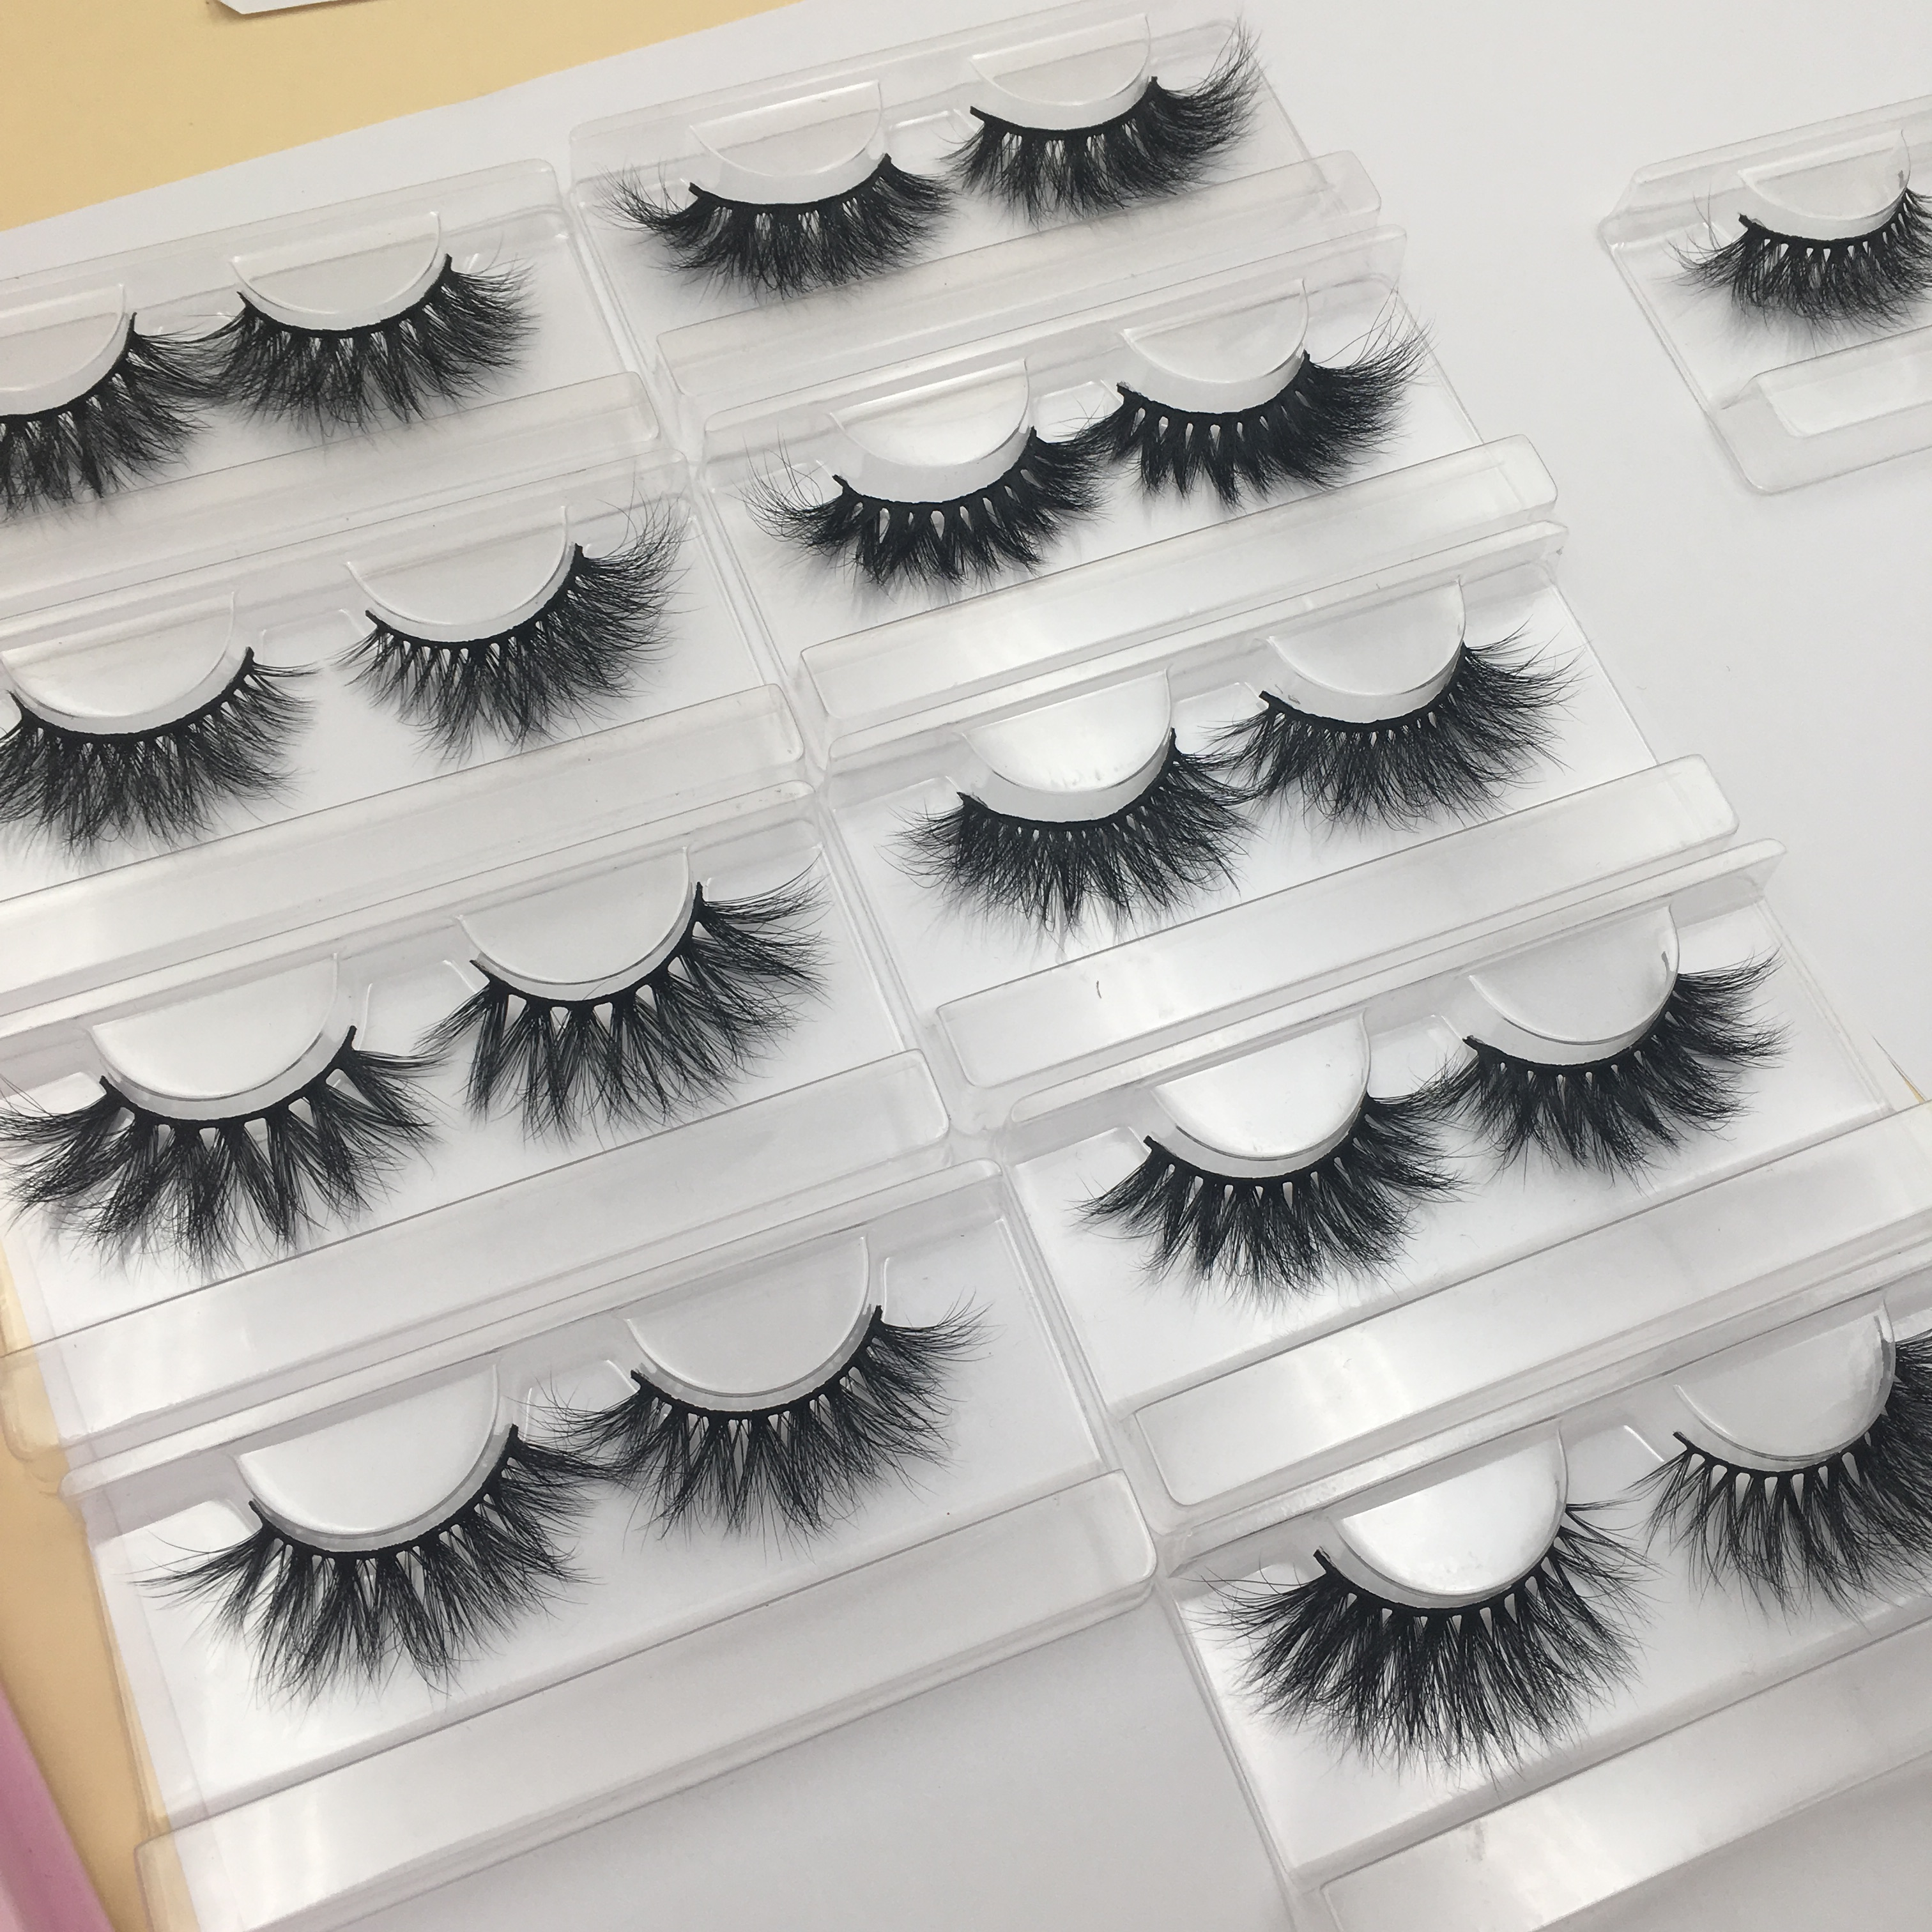 25mm siberian mink lashes - Wella Lashes